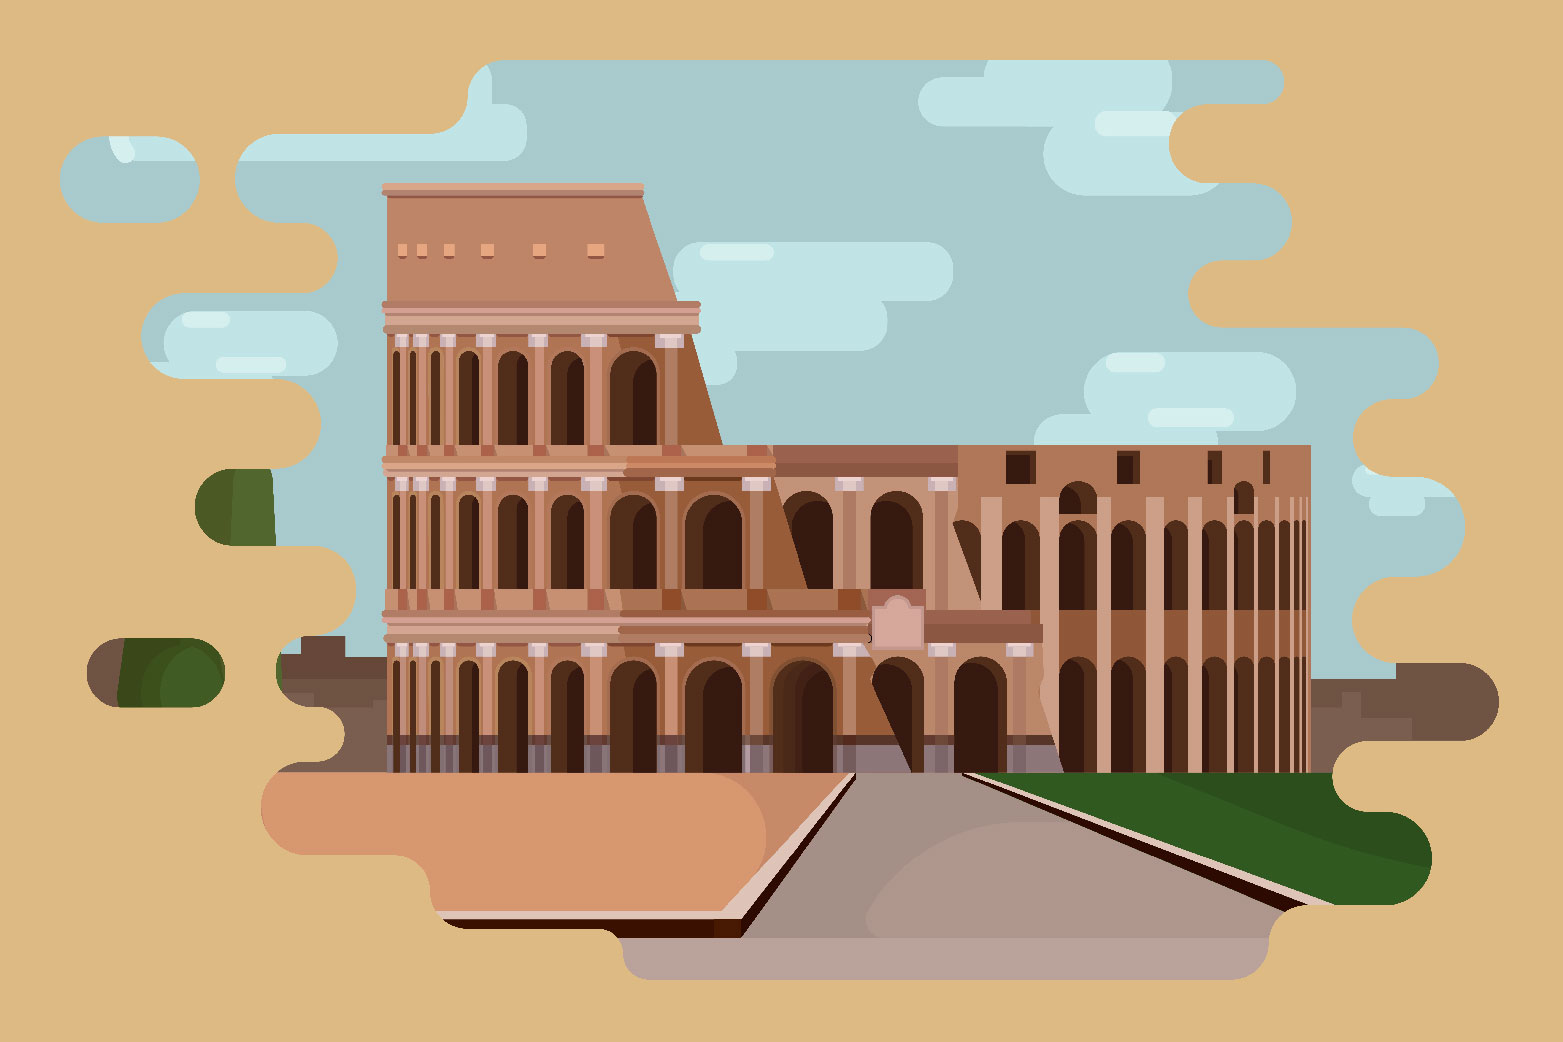 Word wide - Architectural landmarks illustrations example image 4